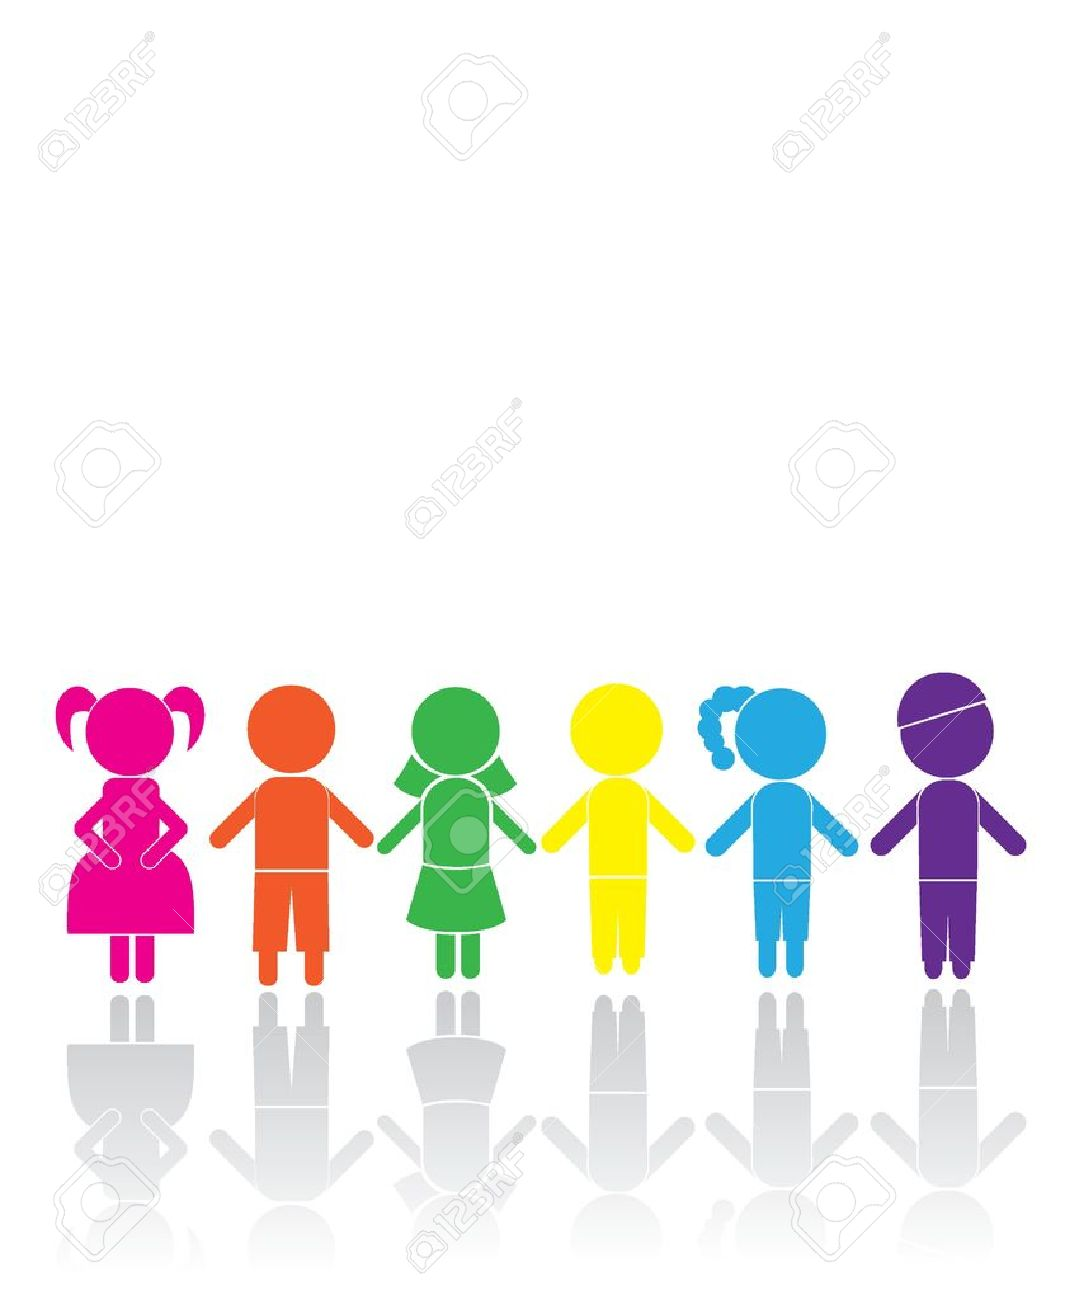 boy girl sticks for children, birthday, icons and others Stock Vector - 14349162